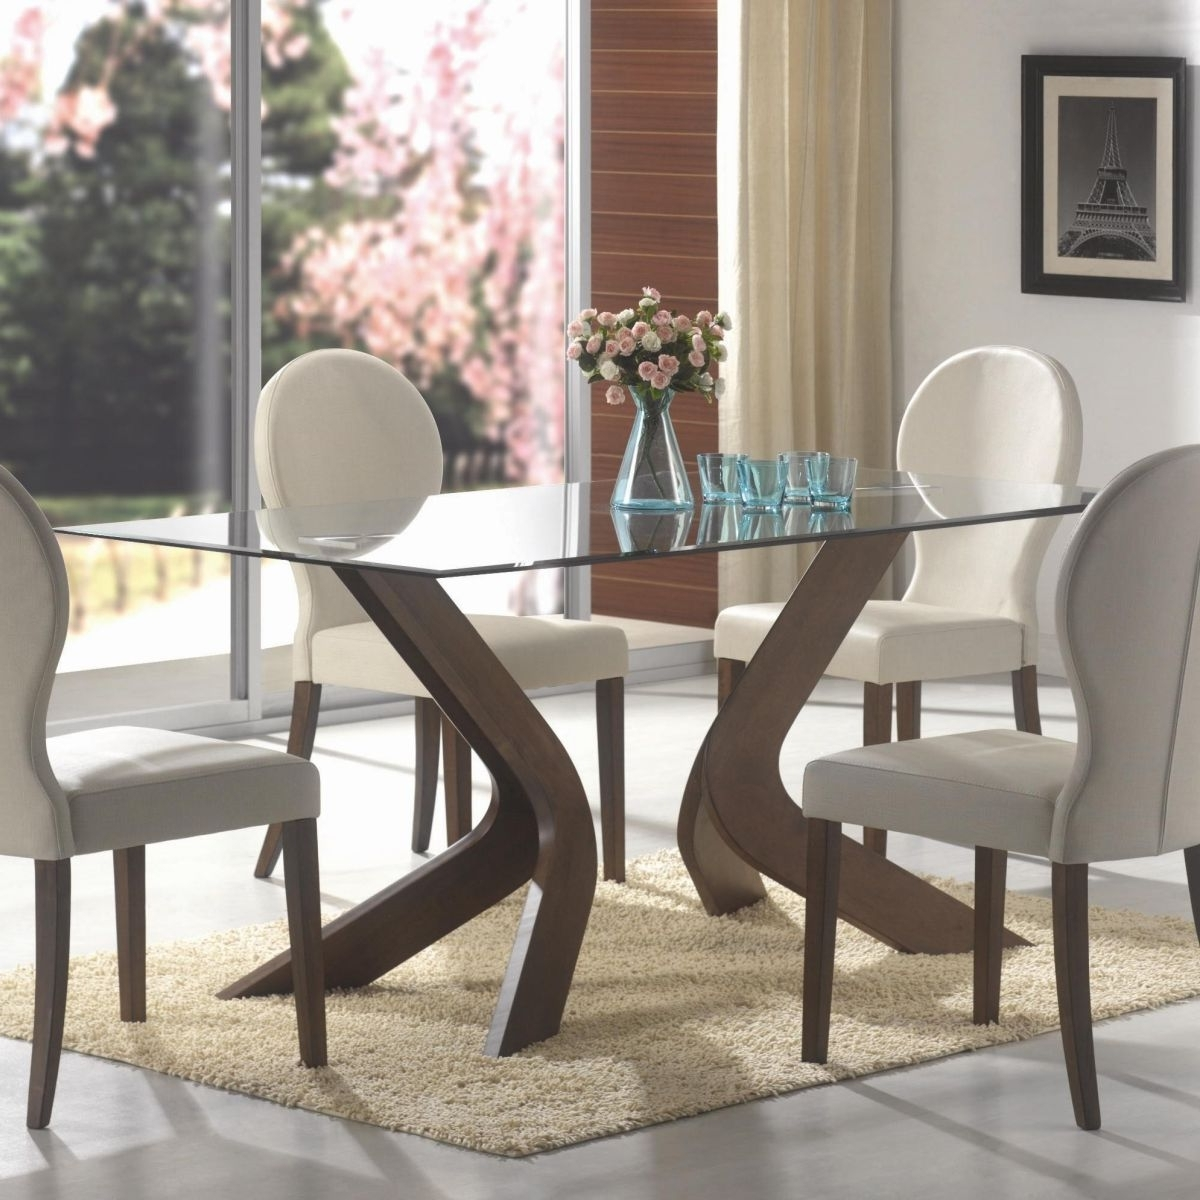 Glass And Oak Dining Tables And Chairs Pertaining To Widely Used Dining Room Contemporary Glass Top Dining Table Oak Dining Room (Gallery 12 of 25)